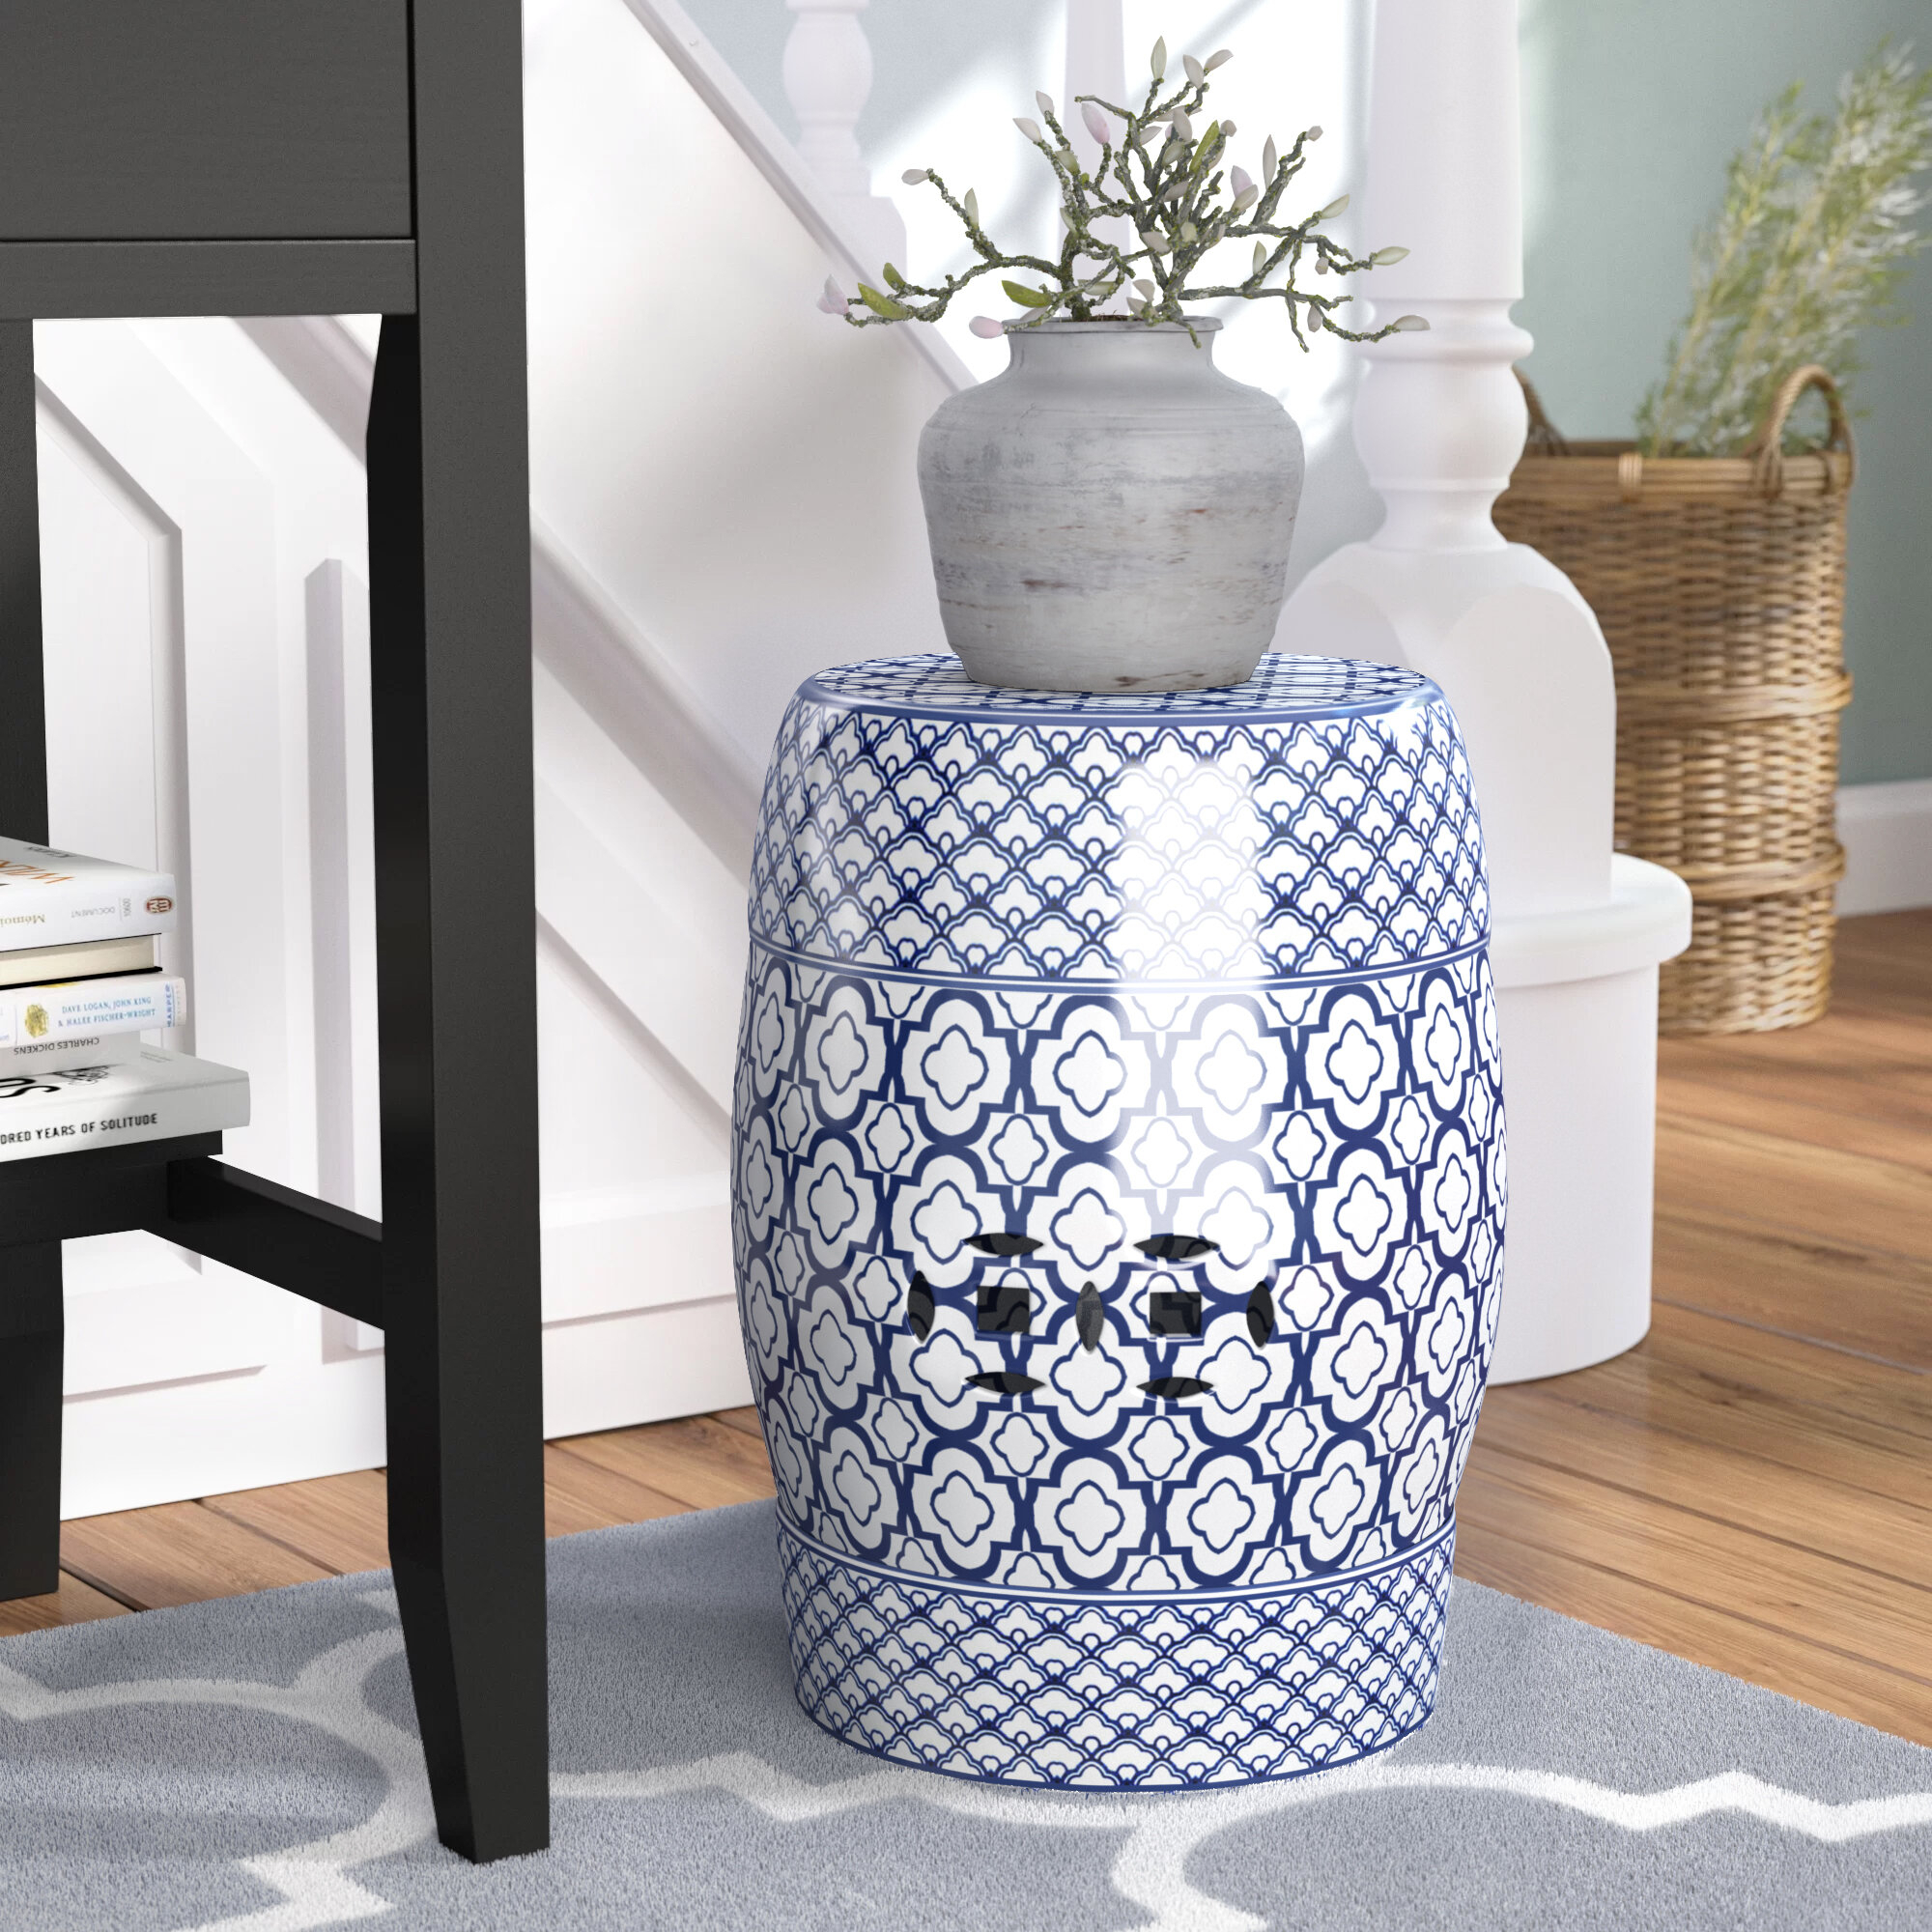 Ceramic Garden Accent Stools You'Ll Love In 2020 | Wayfair Intended For Karlov Ceramic Garden Stools (View 3 of 25)